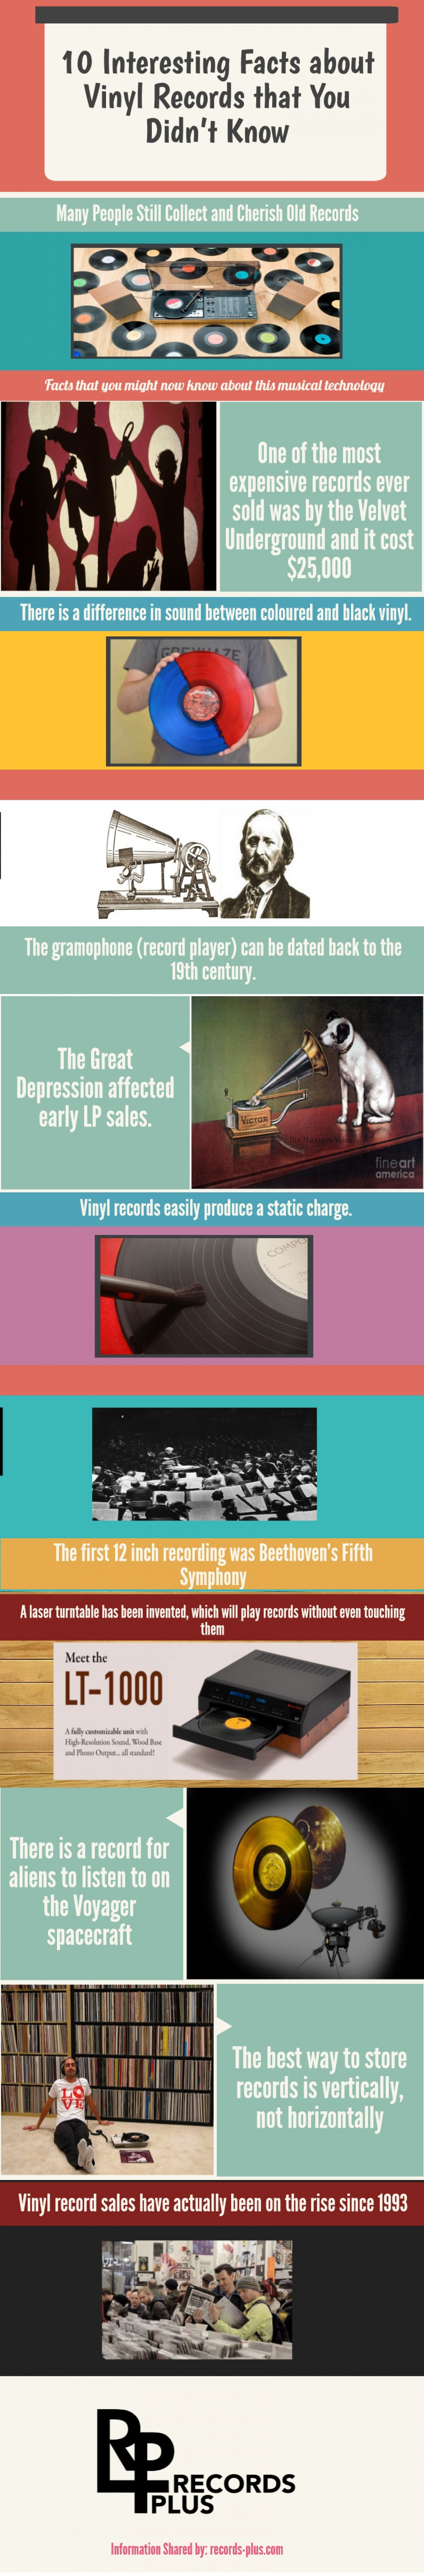 10 Interesting Facts about Vinyl Records that You Didn't Know Infographic